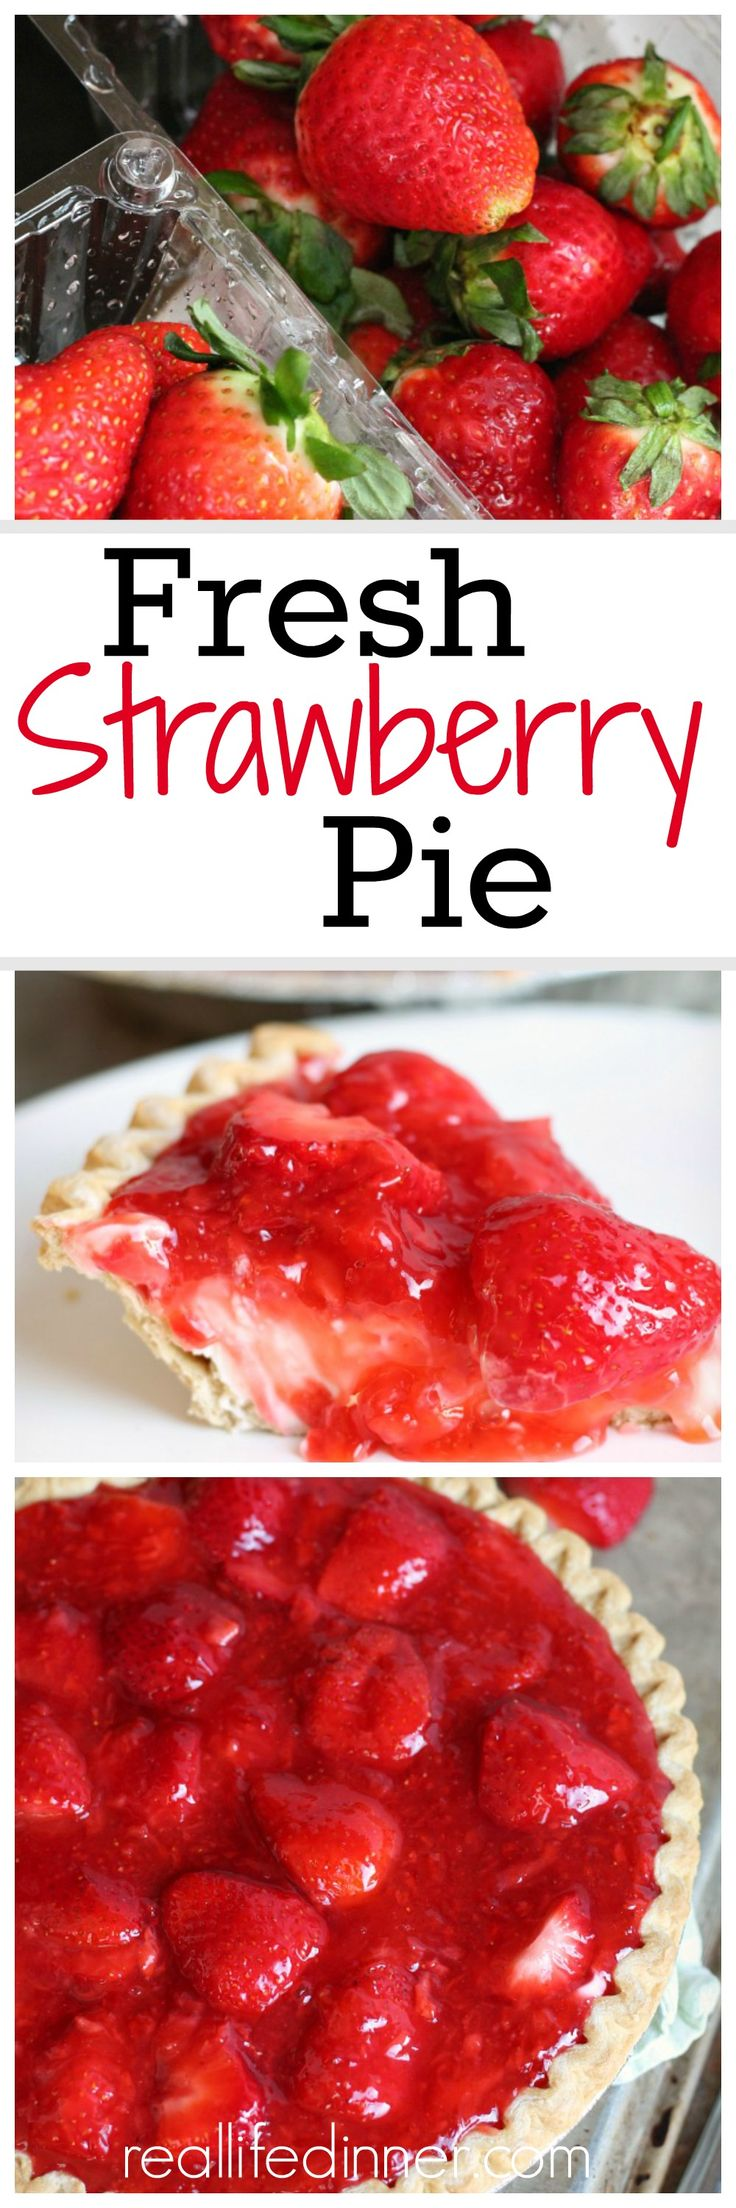 This is like no other Fresh Strawberry Pie I've ever had. It is perfect! So Fresh and Delicious with a fantastic layer of creamy no-bake cheesecake goodness. ~ http://reallifedinner.com